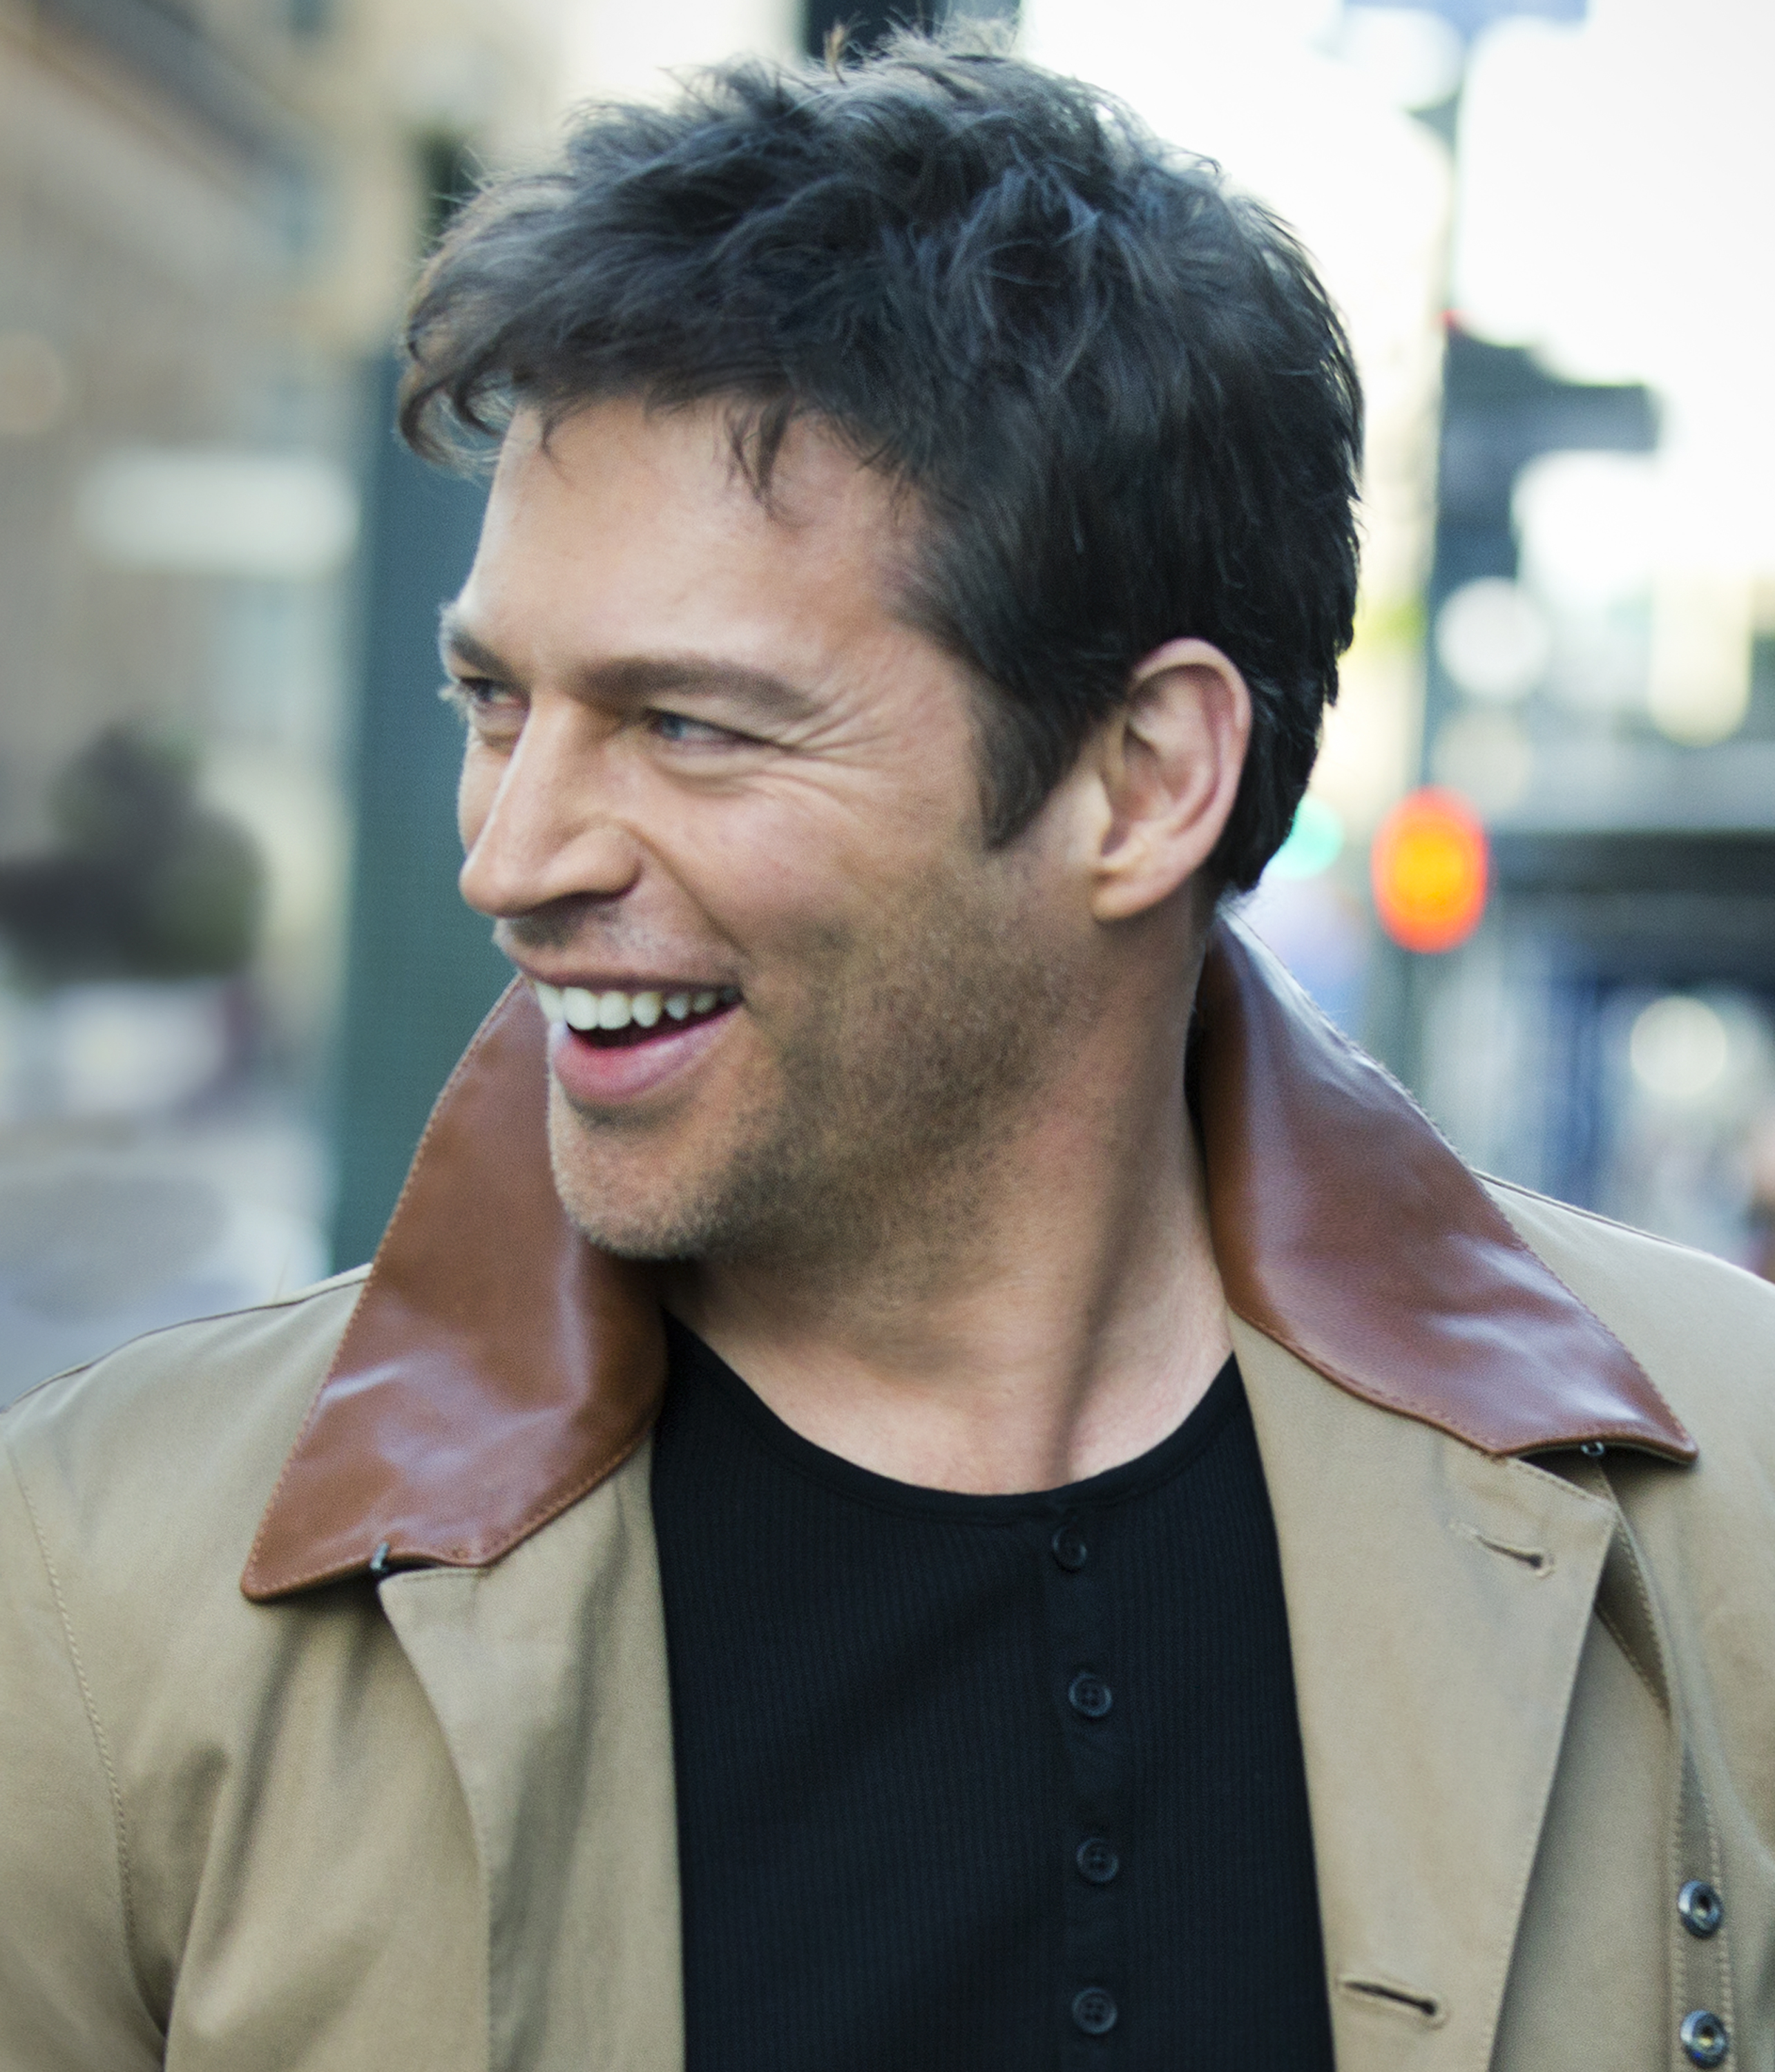 Harry-Connick-Jr-2013-cropped.jpg